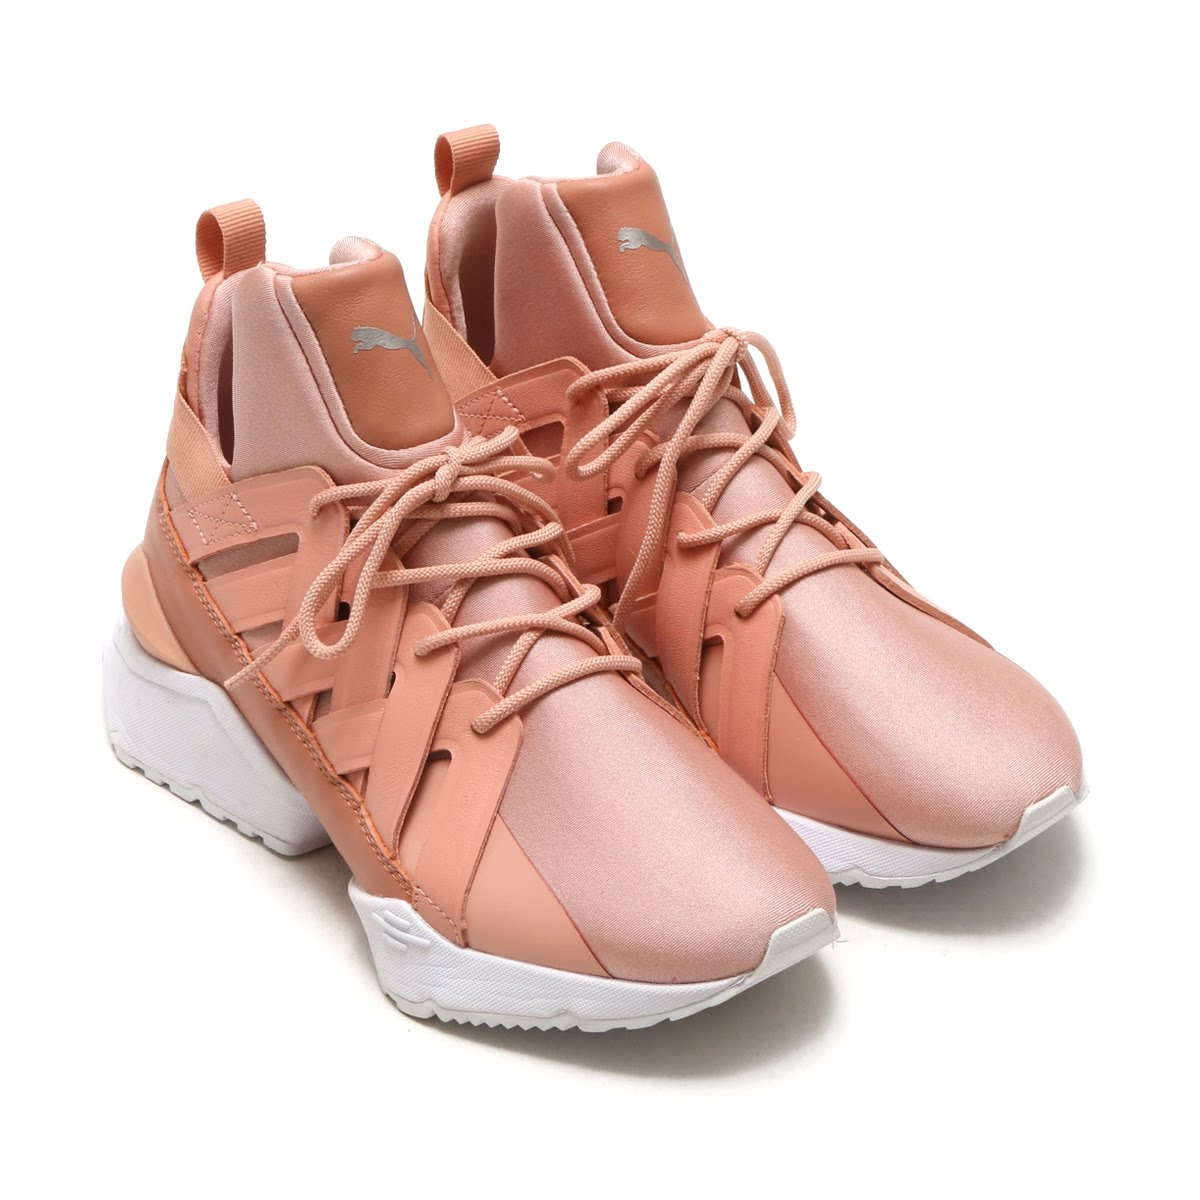 76eb7fda273 Puma Muses echo satin EP women are sneakers of the women size who got  inspiration from elegance and the blessing of the dancer of the new York  City ballet.